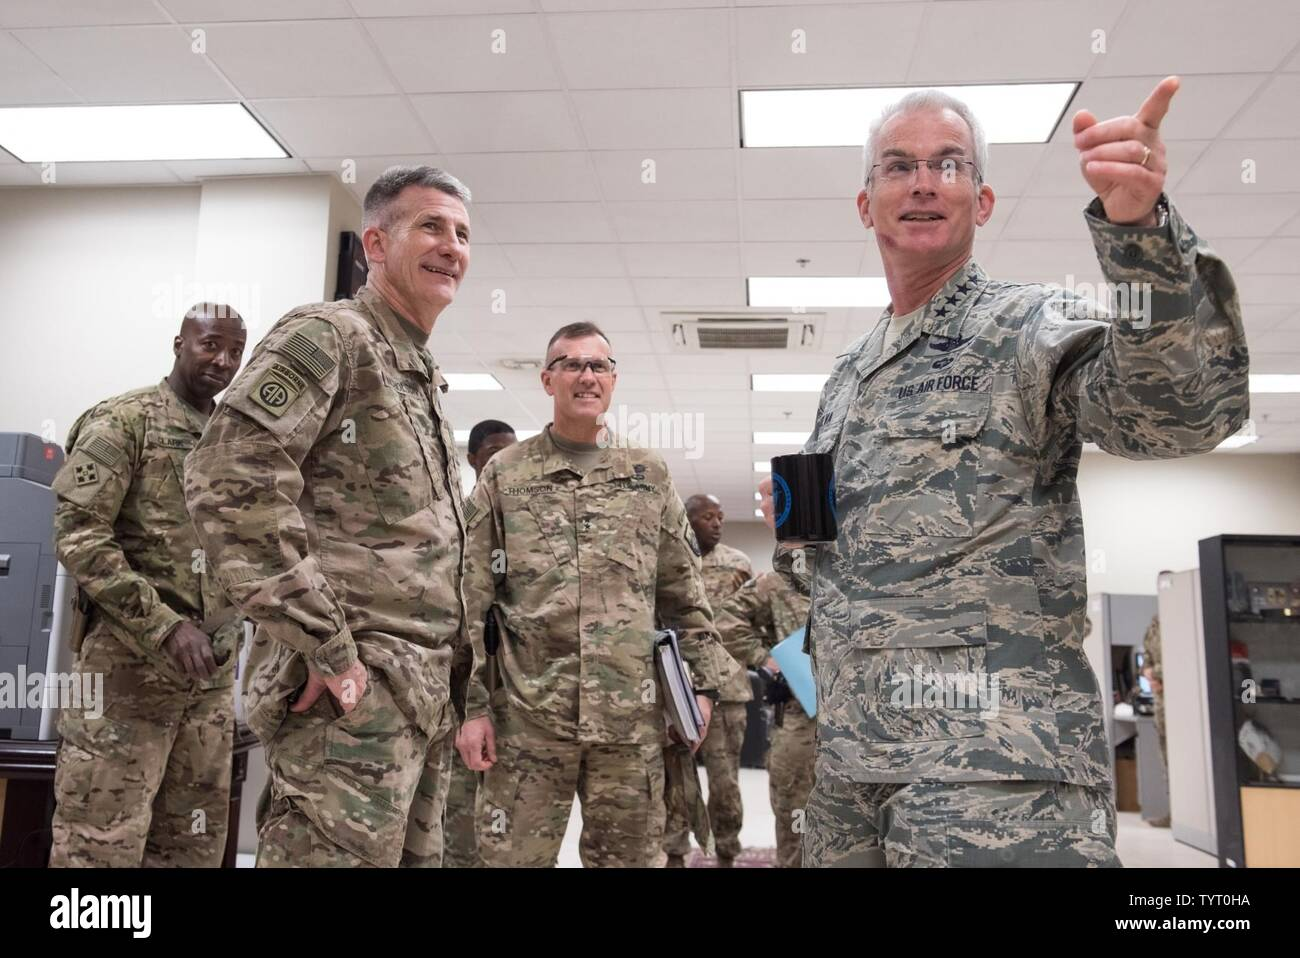 U.S. Air Force Gen. Paul J. Selva, right, vice chairman of the Joint Chiefs of Staff, meets with U.S. Army Gen. John W. Nicholson, left, Resolute Support and U.S. Forces – Afghanistan commander, and U.S. Army Maj. Gen. John Thomson, center, U.S. Forces – Afghanistan deputy commander for support, at Bagram Airfield, Afghanistan, Nov. 24, 2016. Gen. Selva and his wife, Ricki Selva, visited troops across Afghanistan to spend Thanksgiving Day with them and thank them for their service. Stock Photo